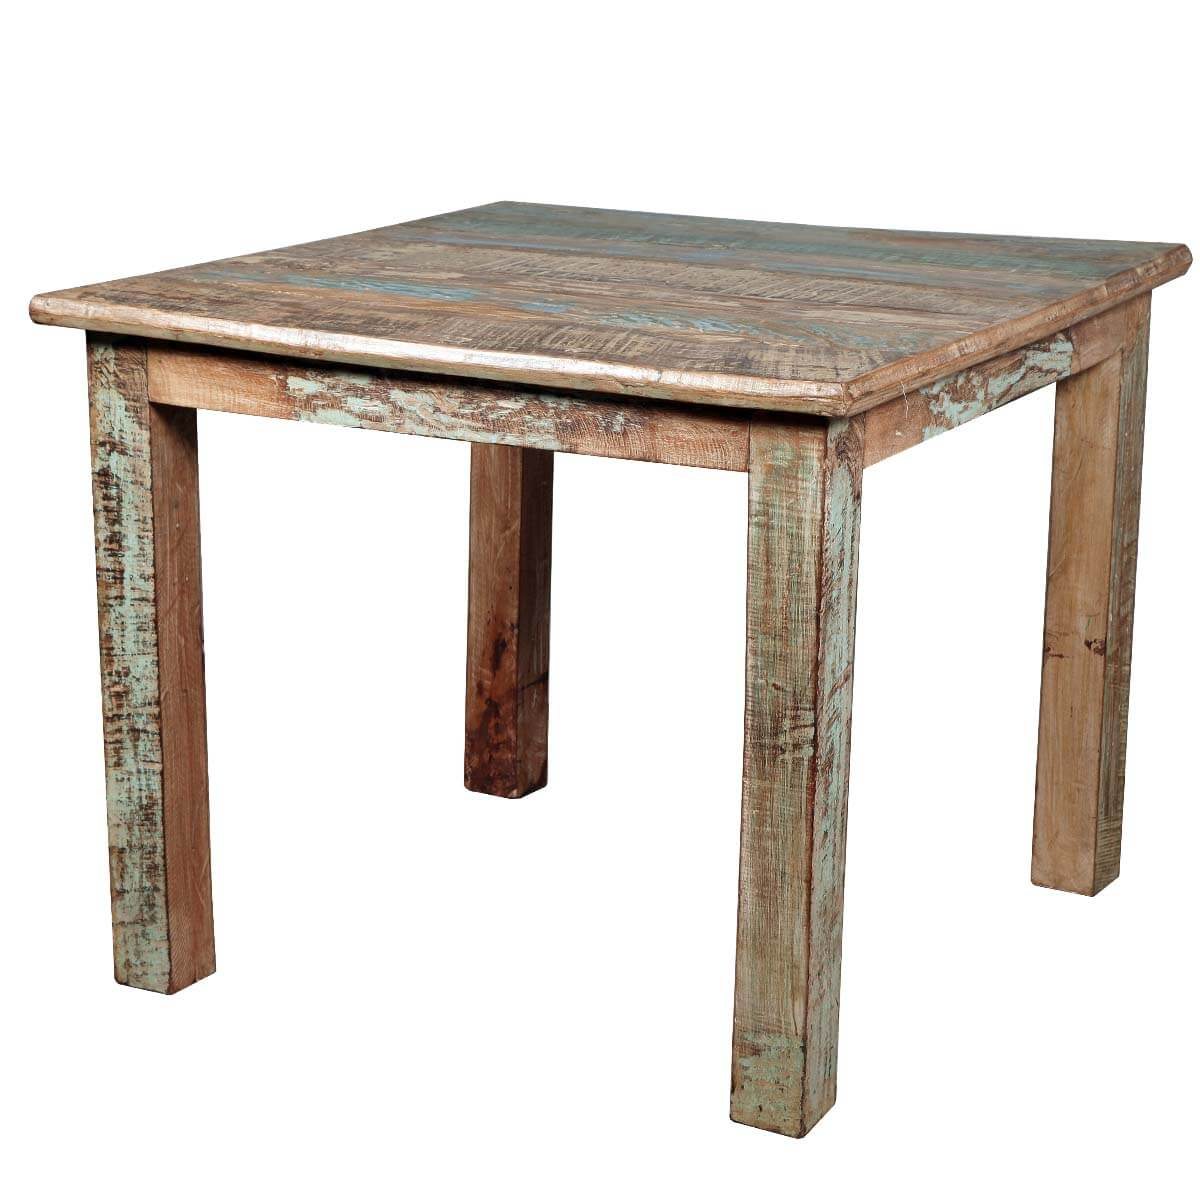 Rustic reclaimed wood distressed small kitchen dining table - Kitchen tables for small kitchens ...